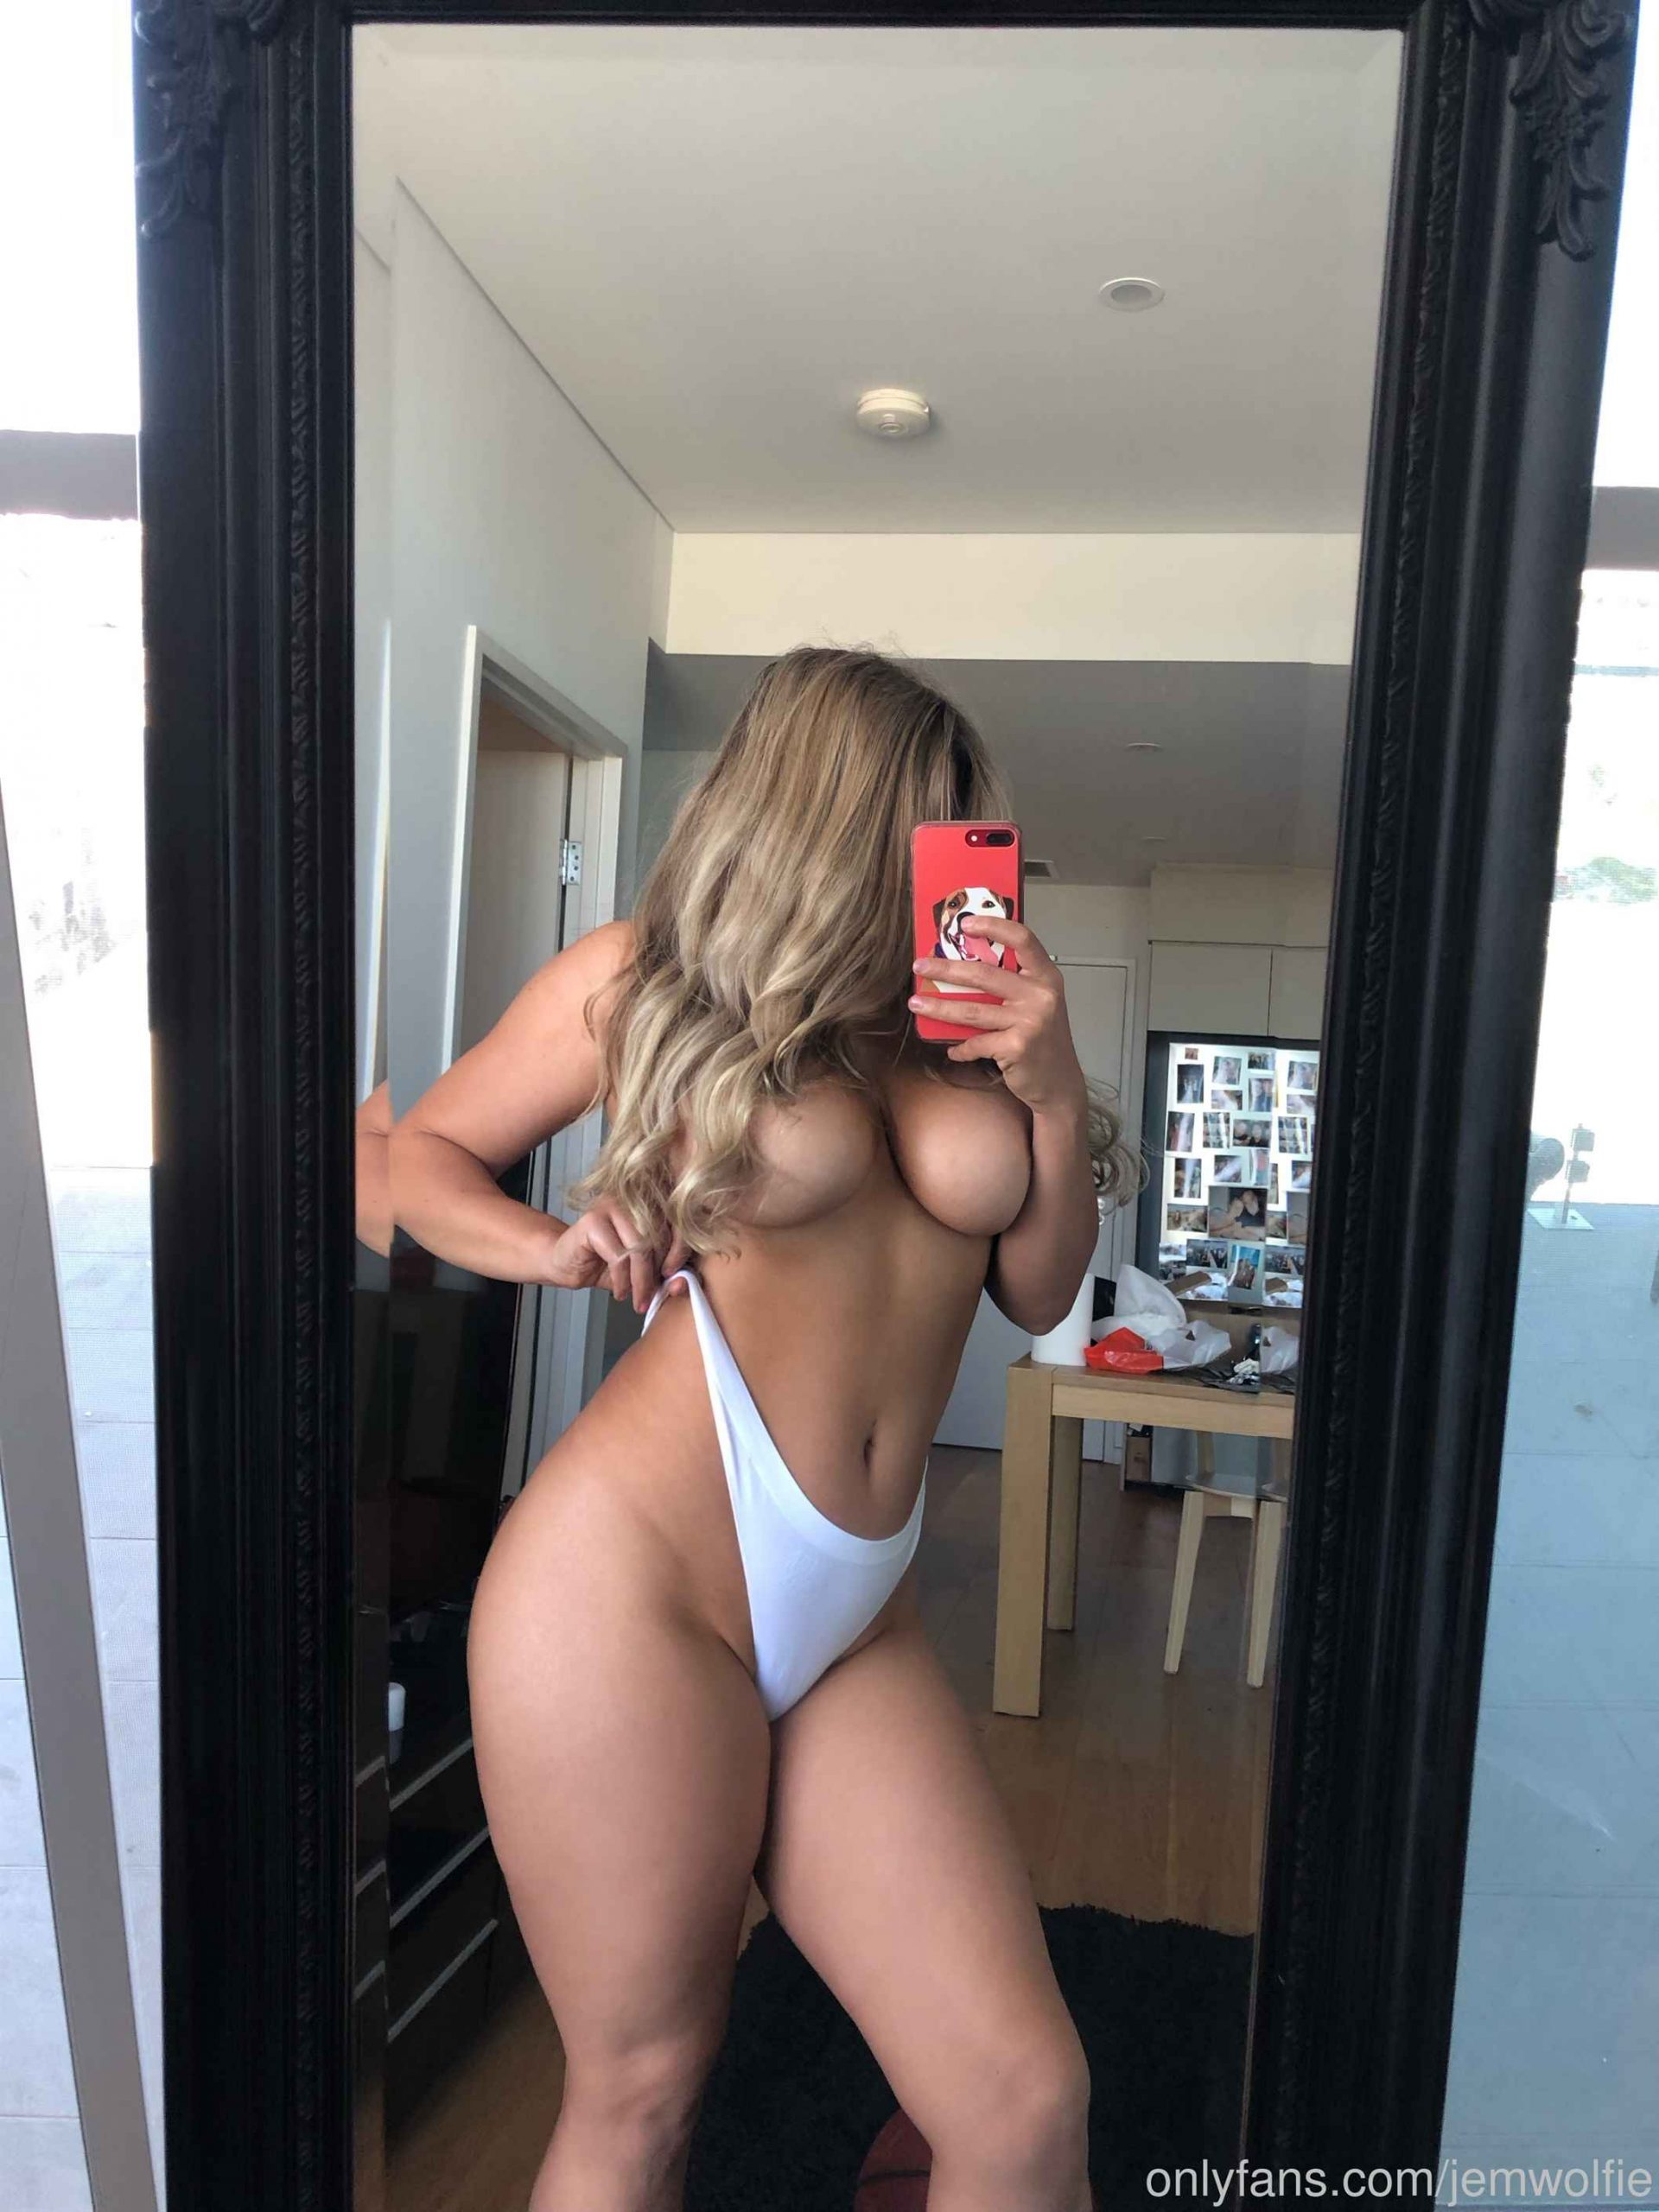 Jem Wolfie Nude Shower Onlyfans Photos Leaked 0028